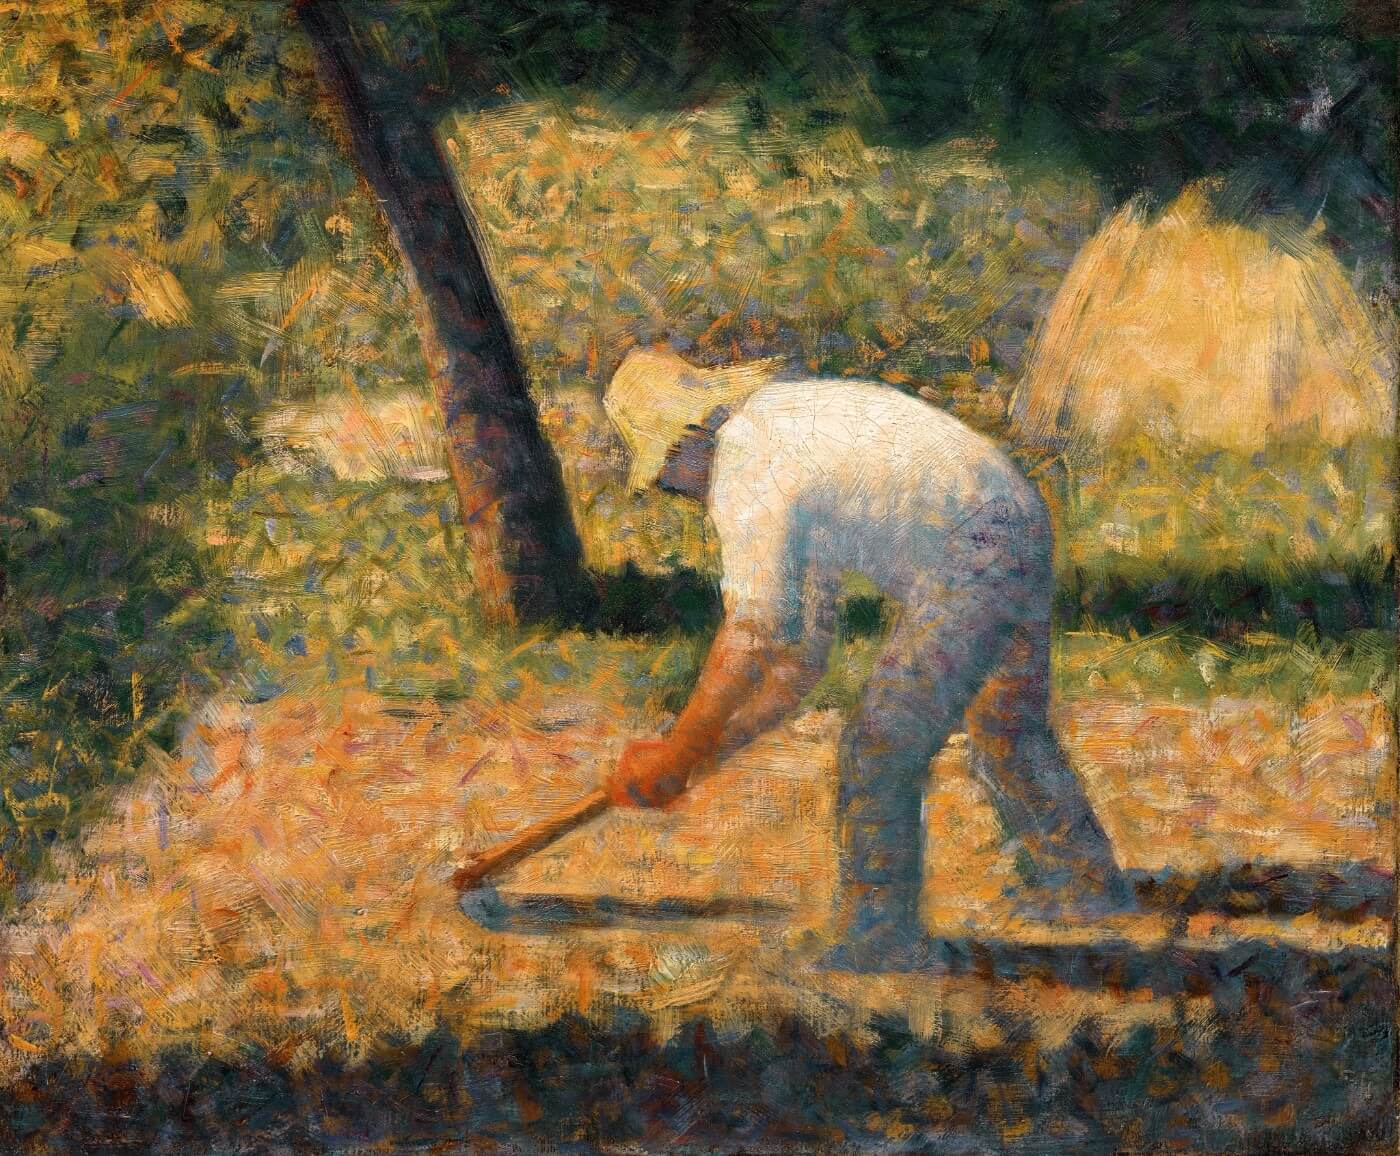 Georges Seurat Paintings | Buy Posters, Frames, Canvas, Digital Art & Large Size Prints Of The Famous Old Master's Artworks